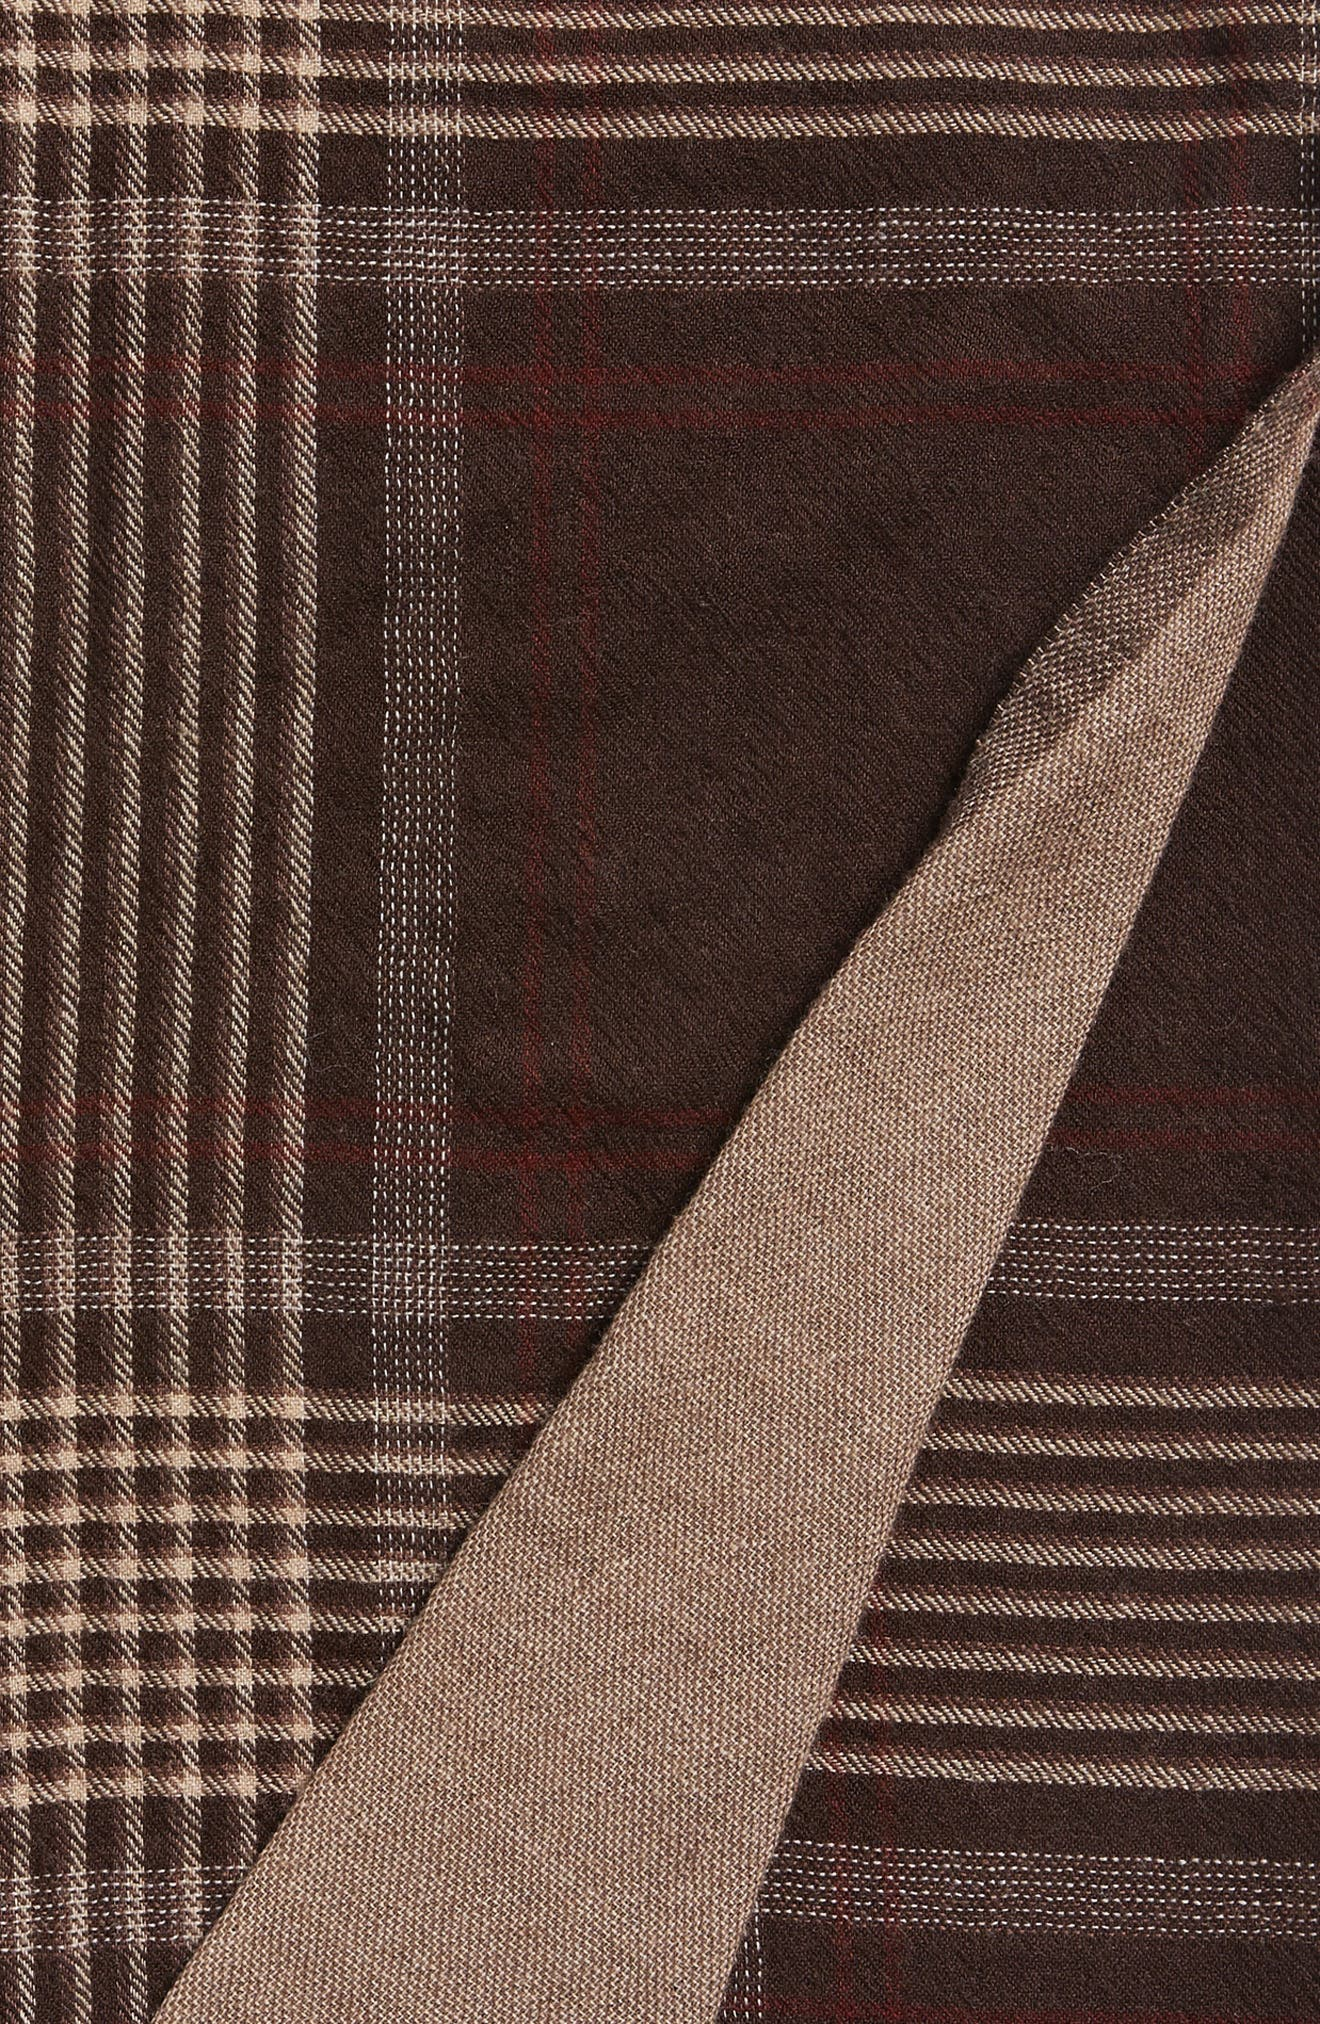 Plaid Double Face Merino Wool Throw,                             Alternate thumbnail 3, color,                             Brown Shadow Stripe Plaid